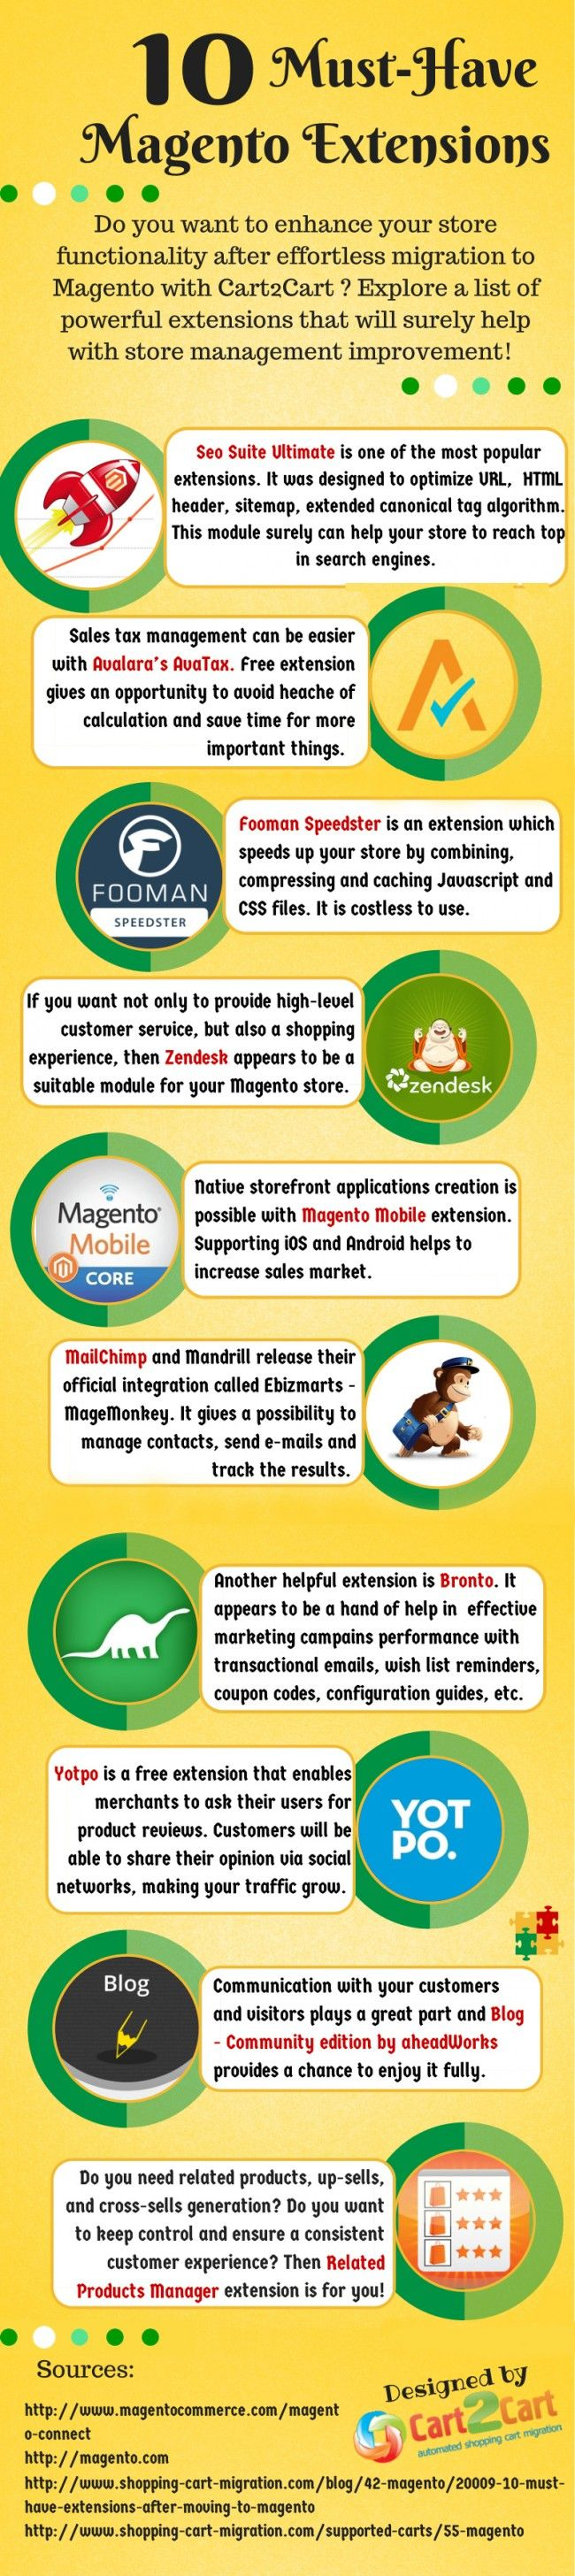 The Most Popular Magento Extensions [Infographic]